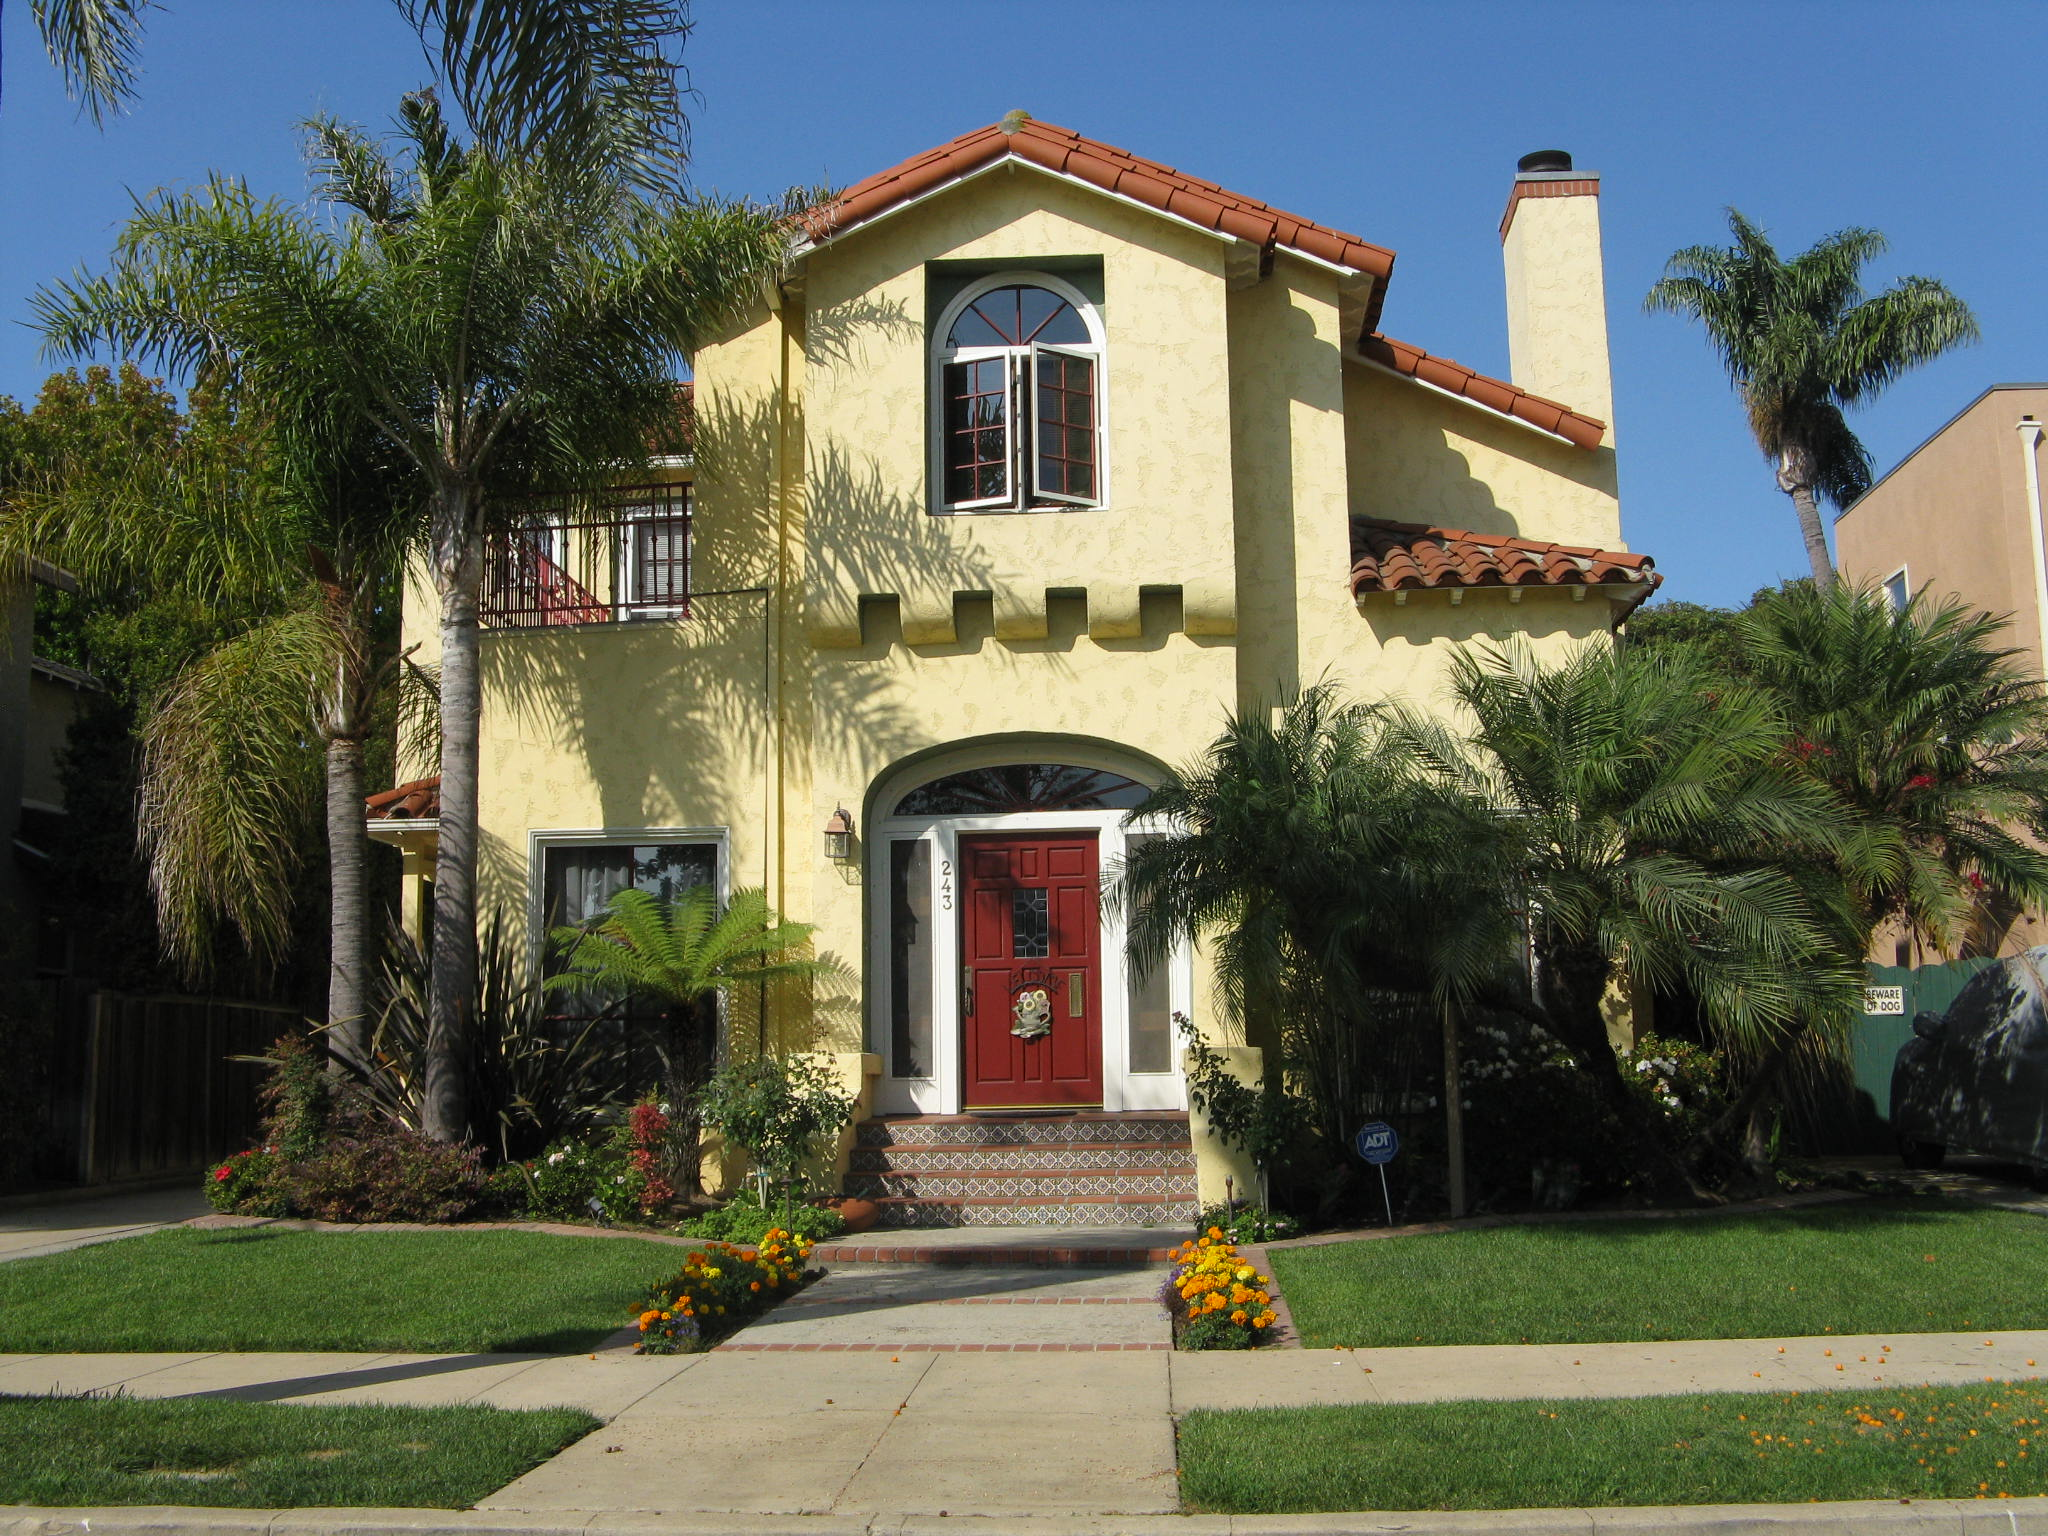 Homes for Sale in Belmont Heights, Long Beach CA